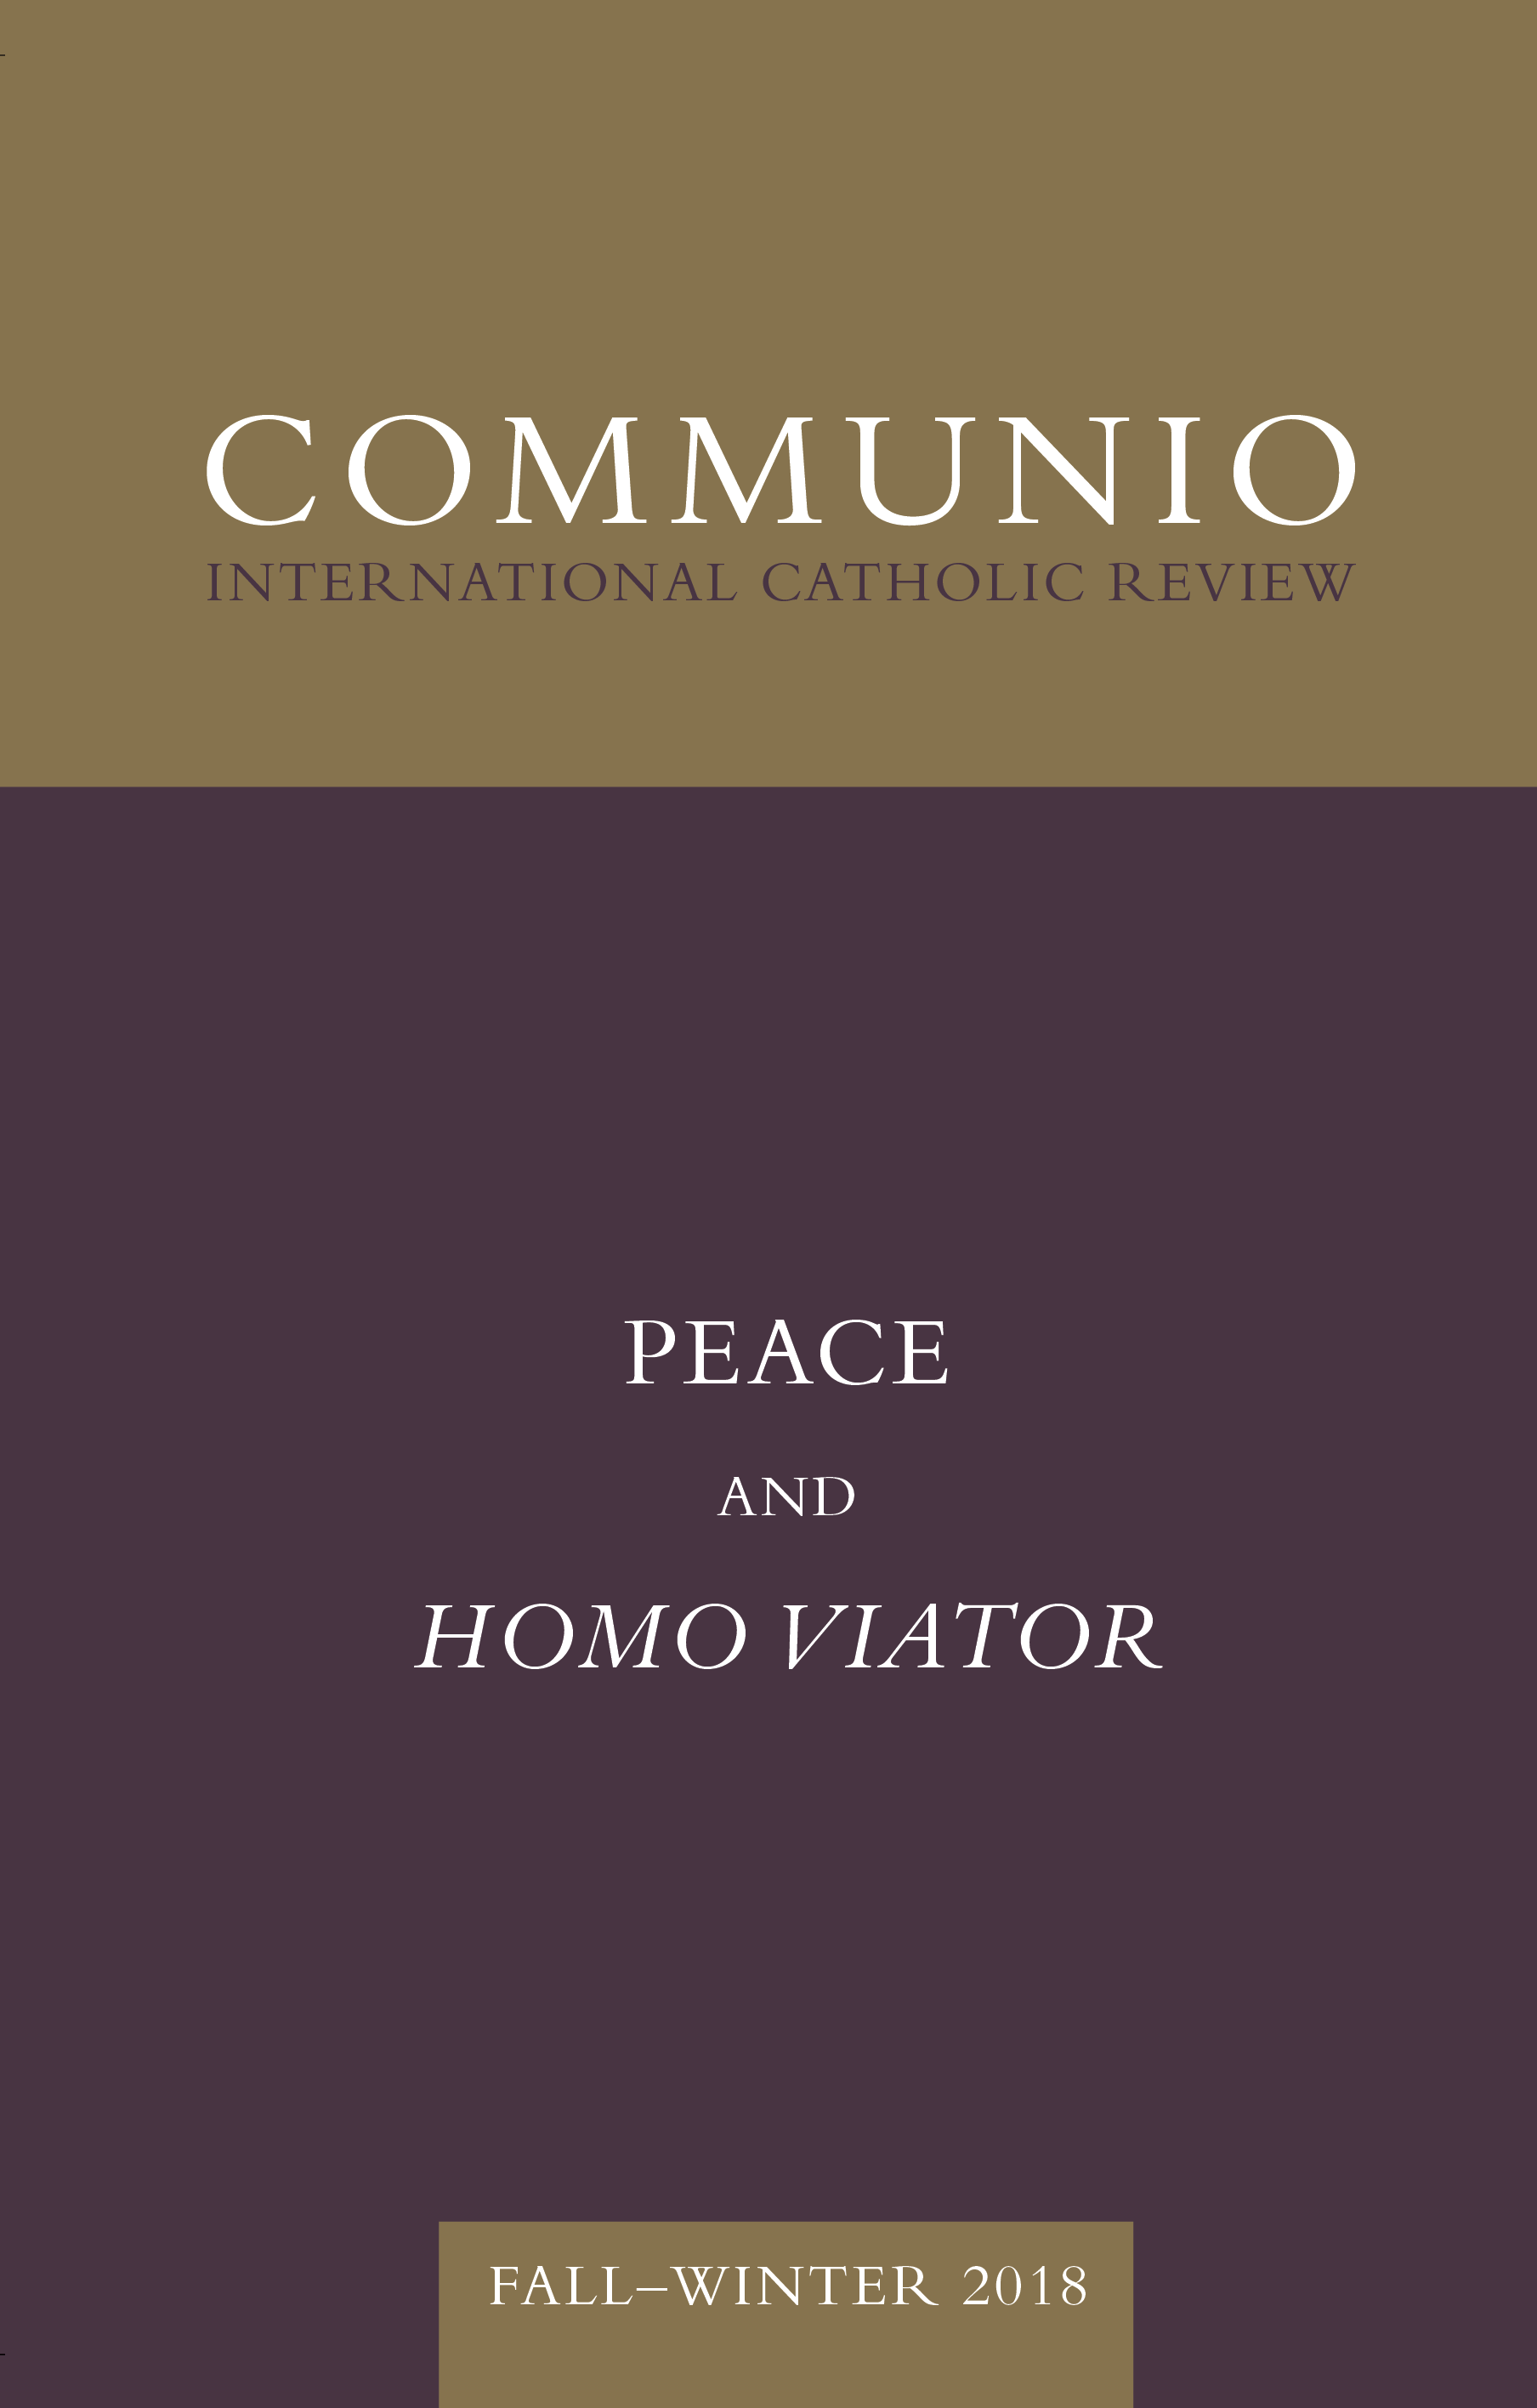 Communio - Fall-Winter 2018 - Peace and Homo Viator